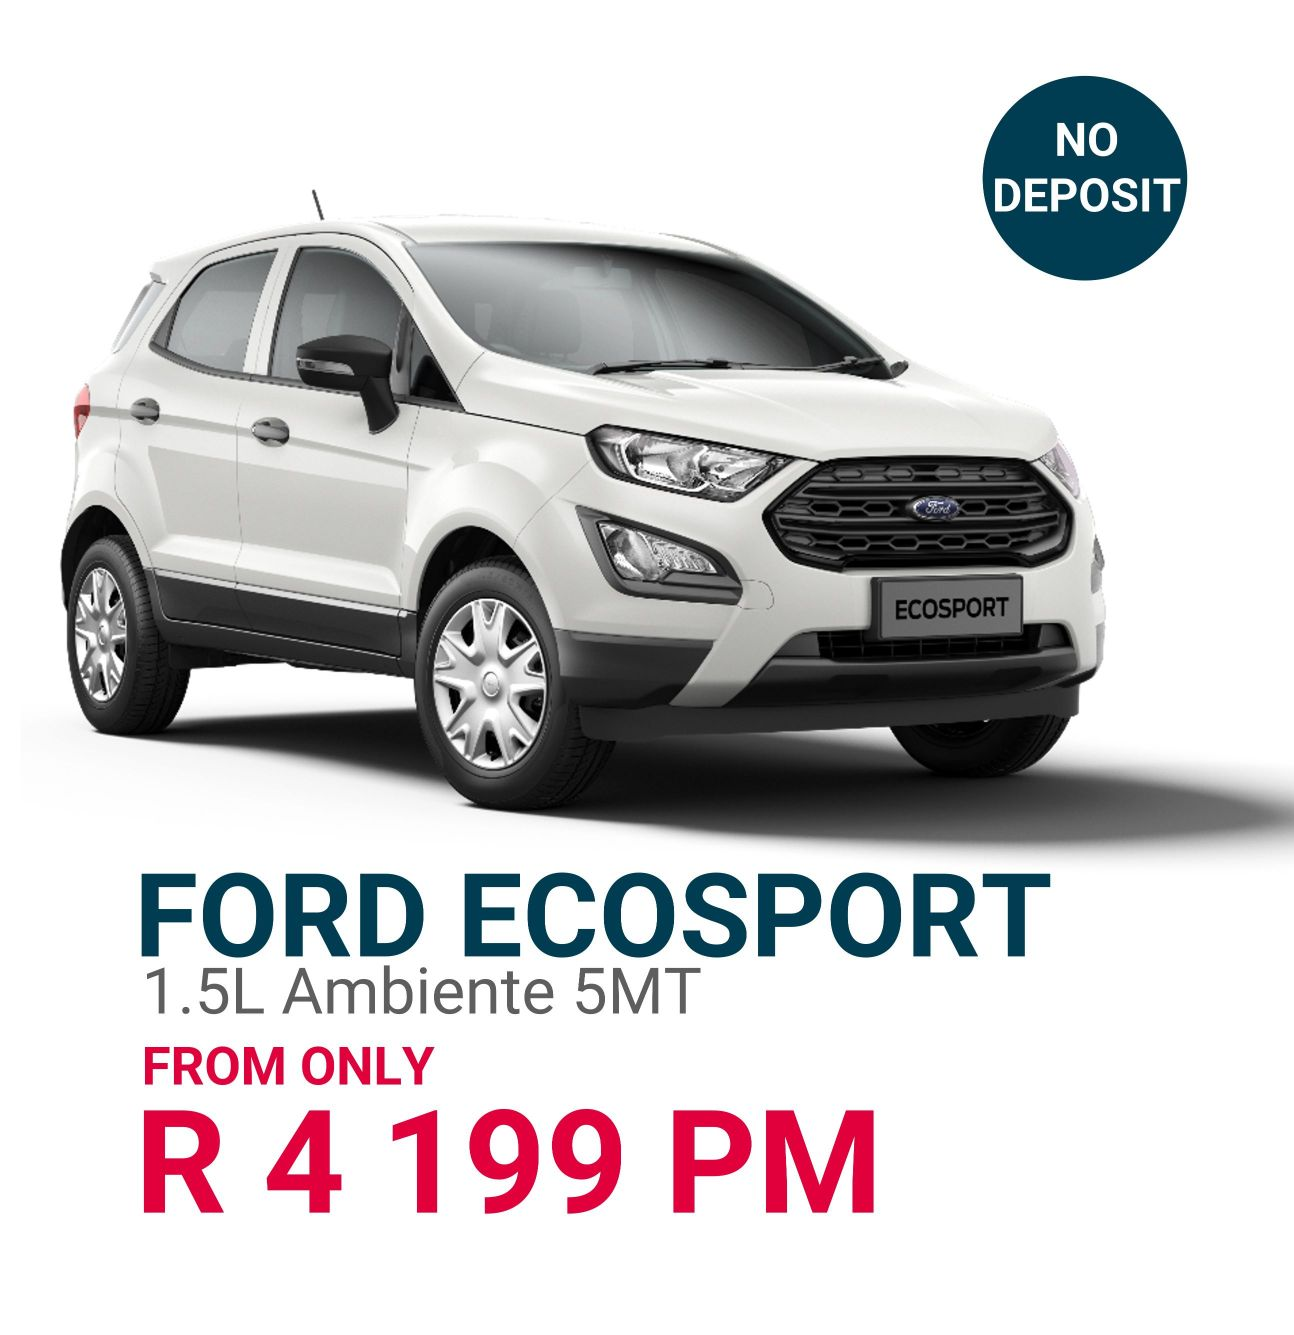 ford-ecosport-from-only-r4-199pm